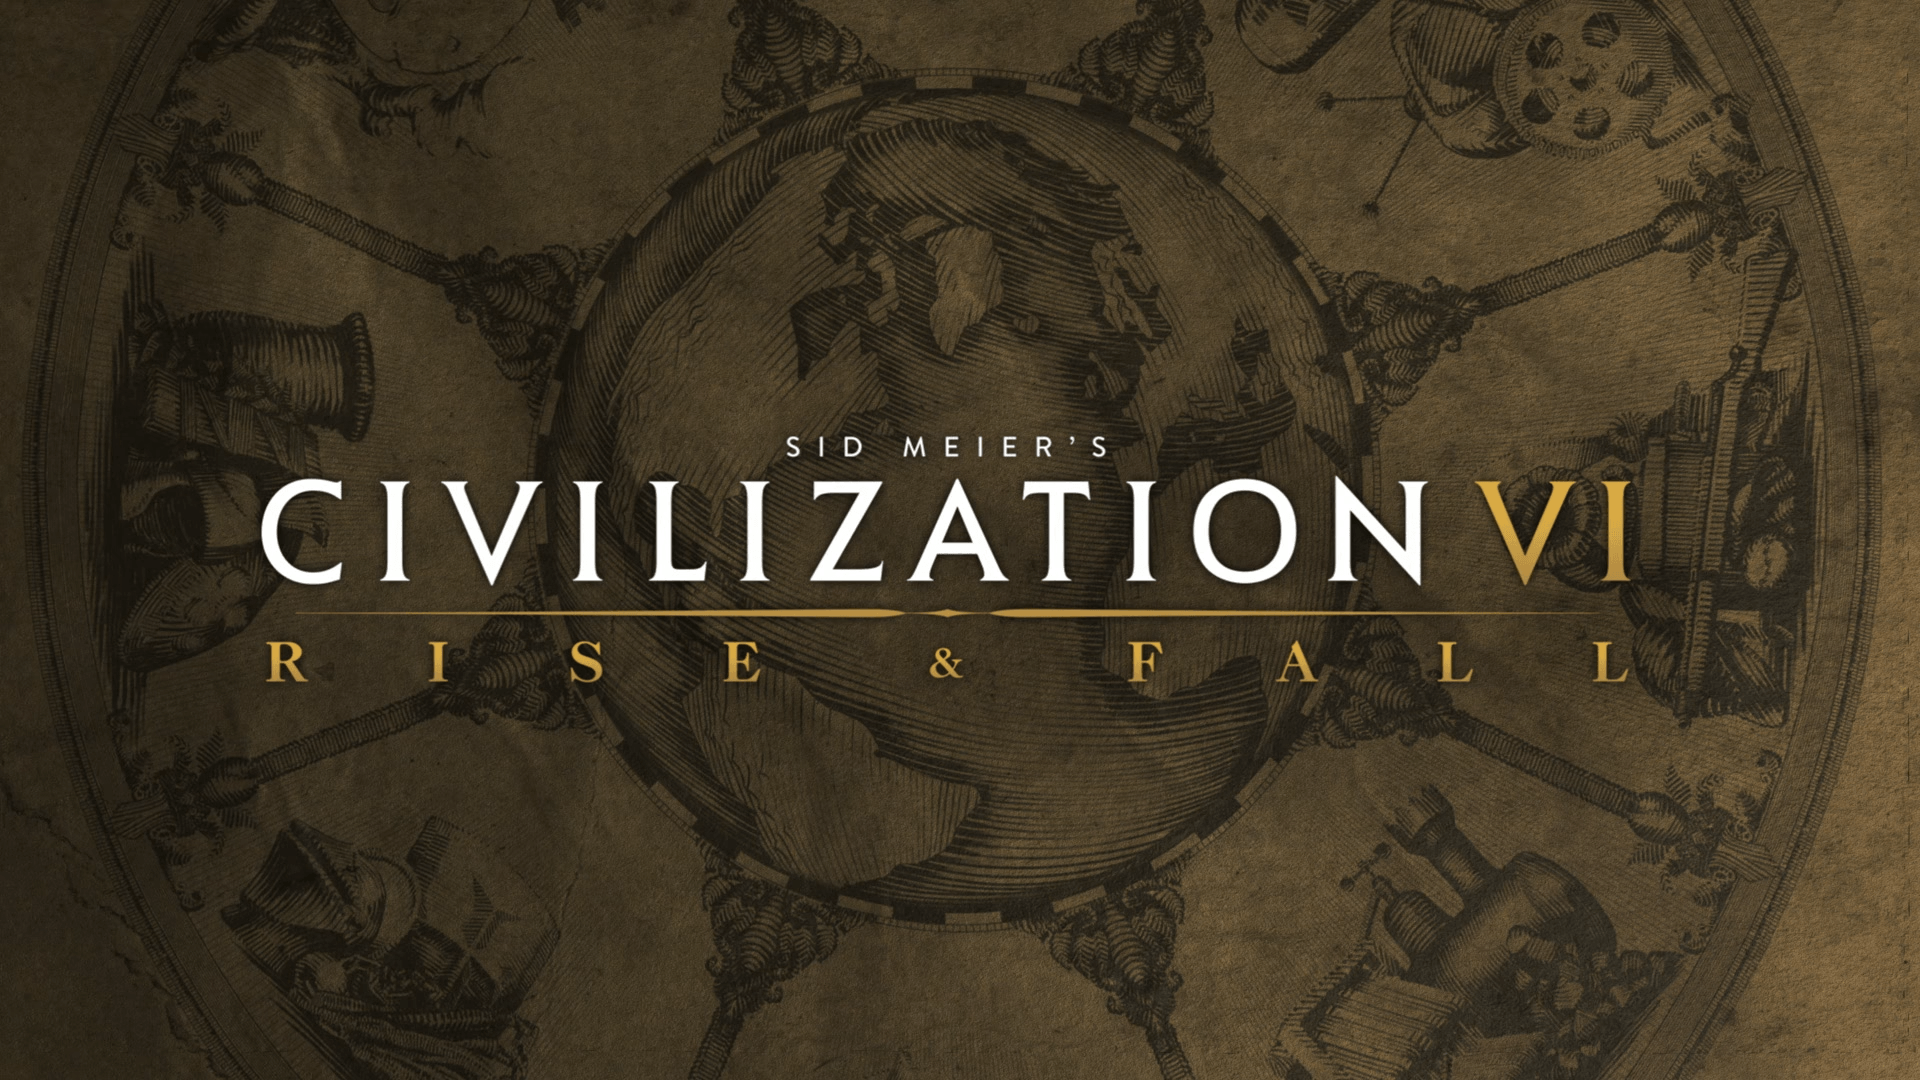 Civilization Vi Rise And Fall Wallpapers Wallpaper Cave